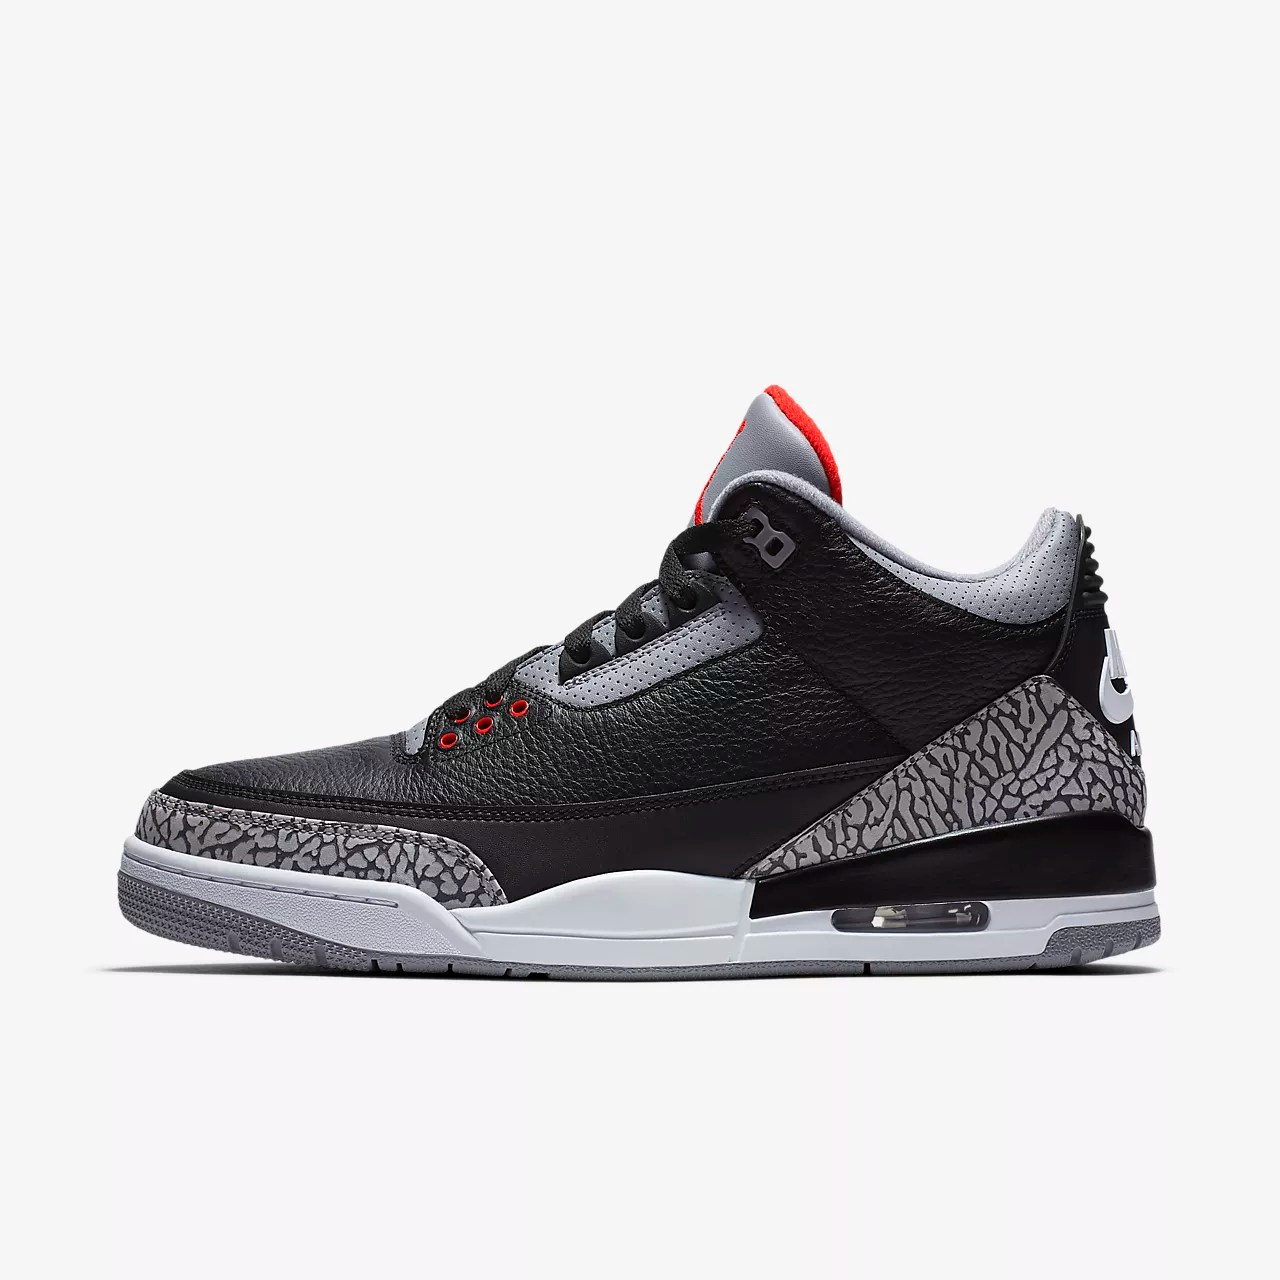 Air Jordan 3 Retro OG Men s Shoe  Nike com CA Air Jordan 3 Retro OG Men s Shoe